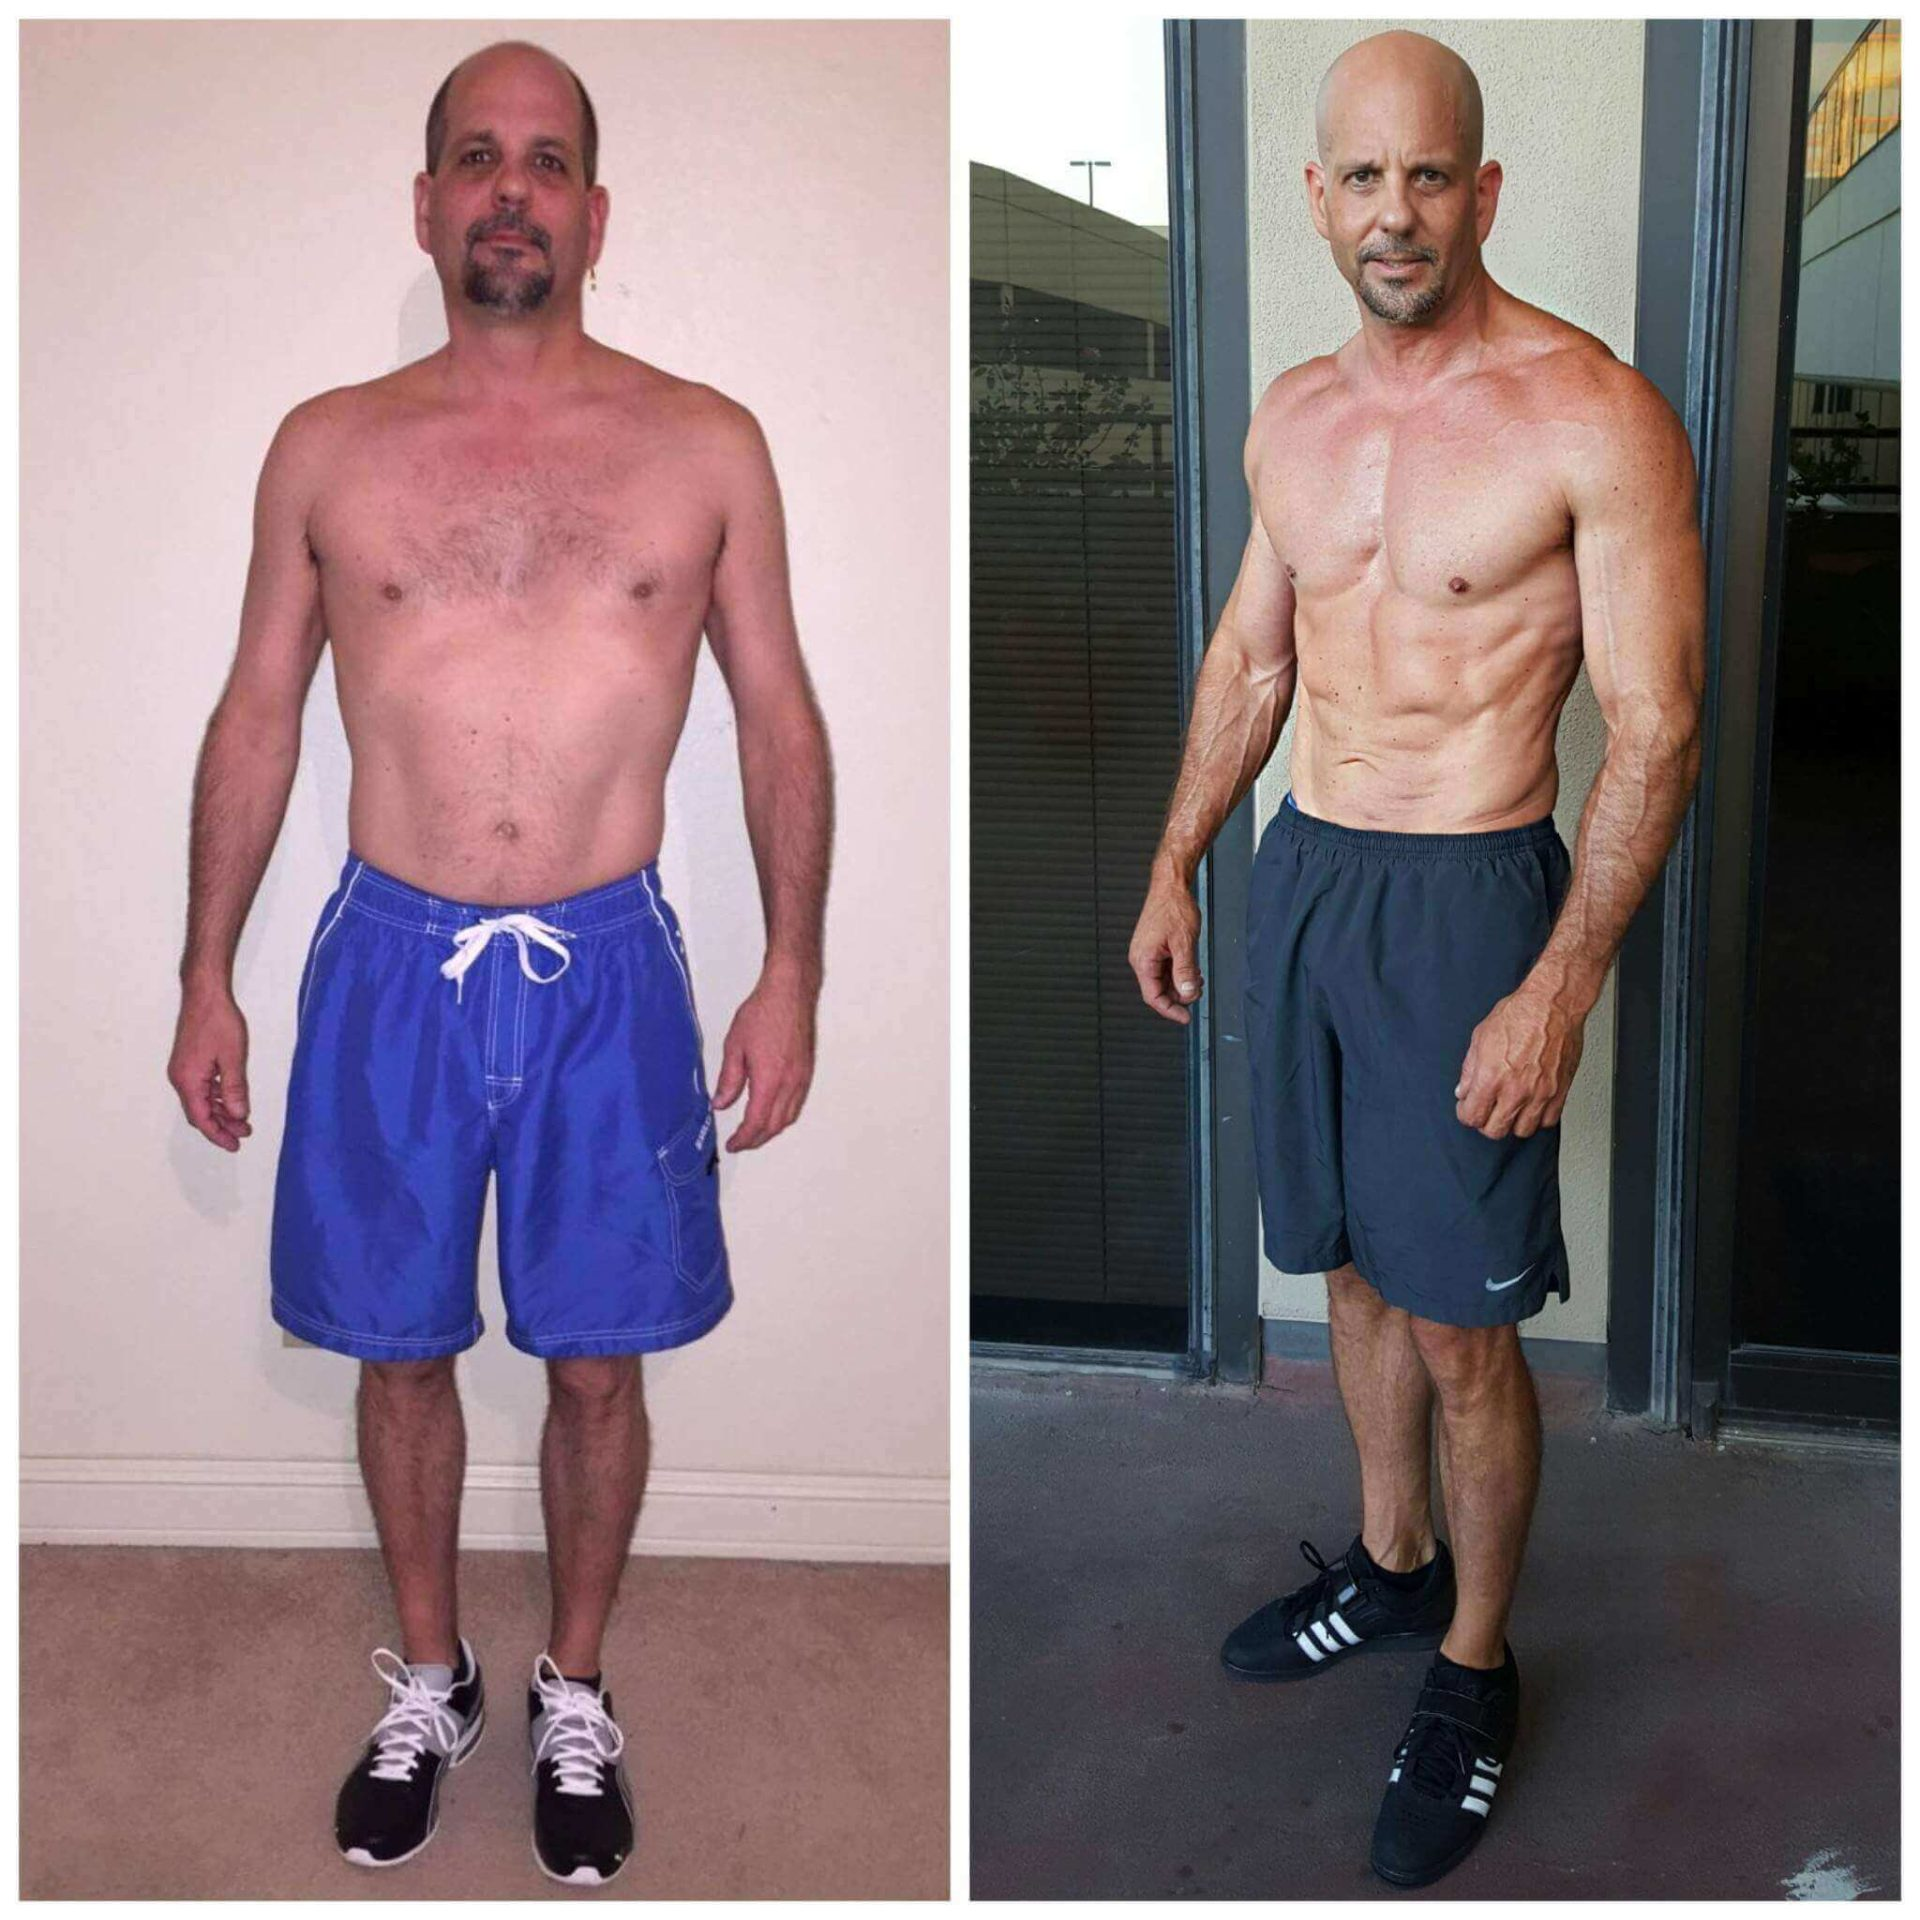 Mark muscle building top trainer Dallas